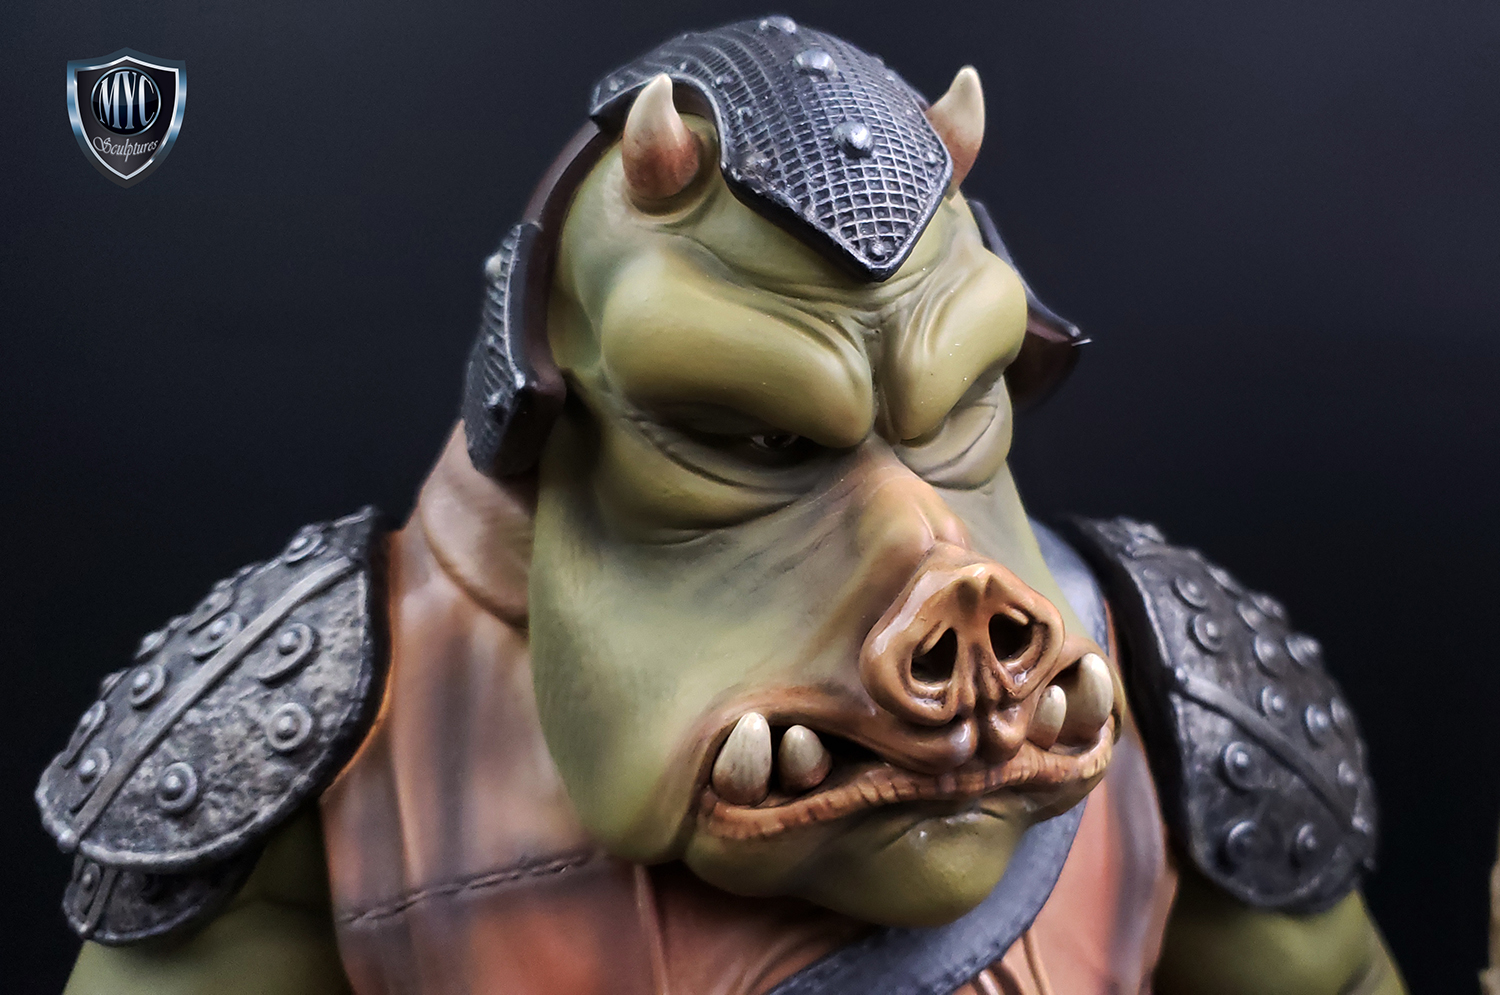 Gamorrean_Guard_MYC_Custom_Statue_26